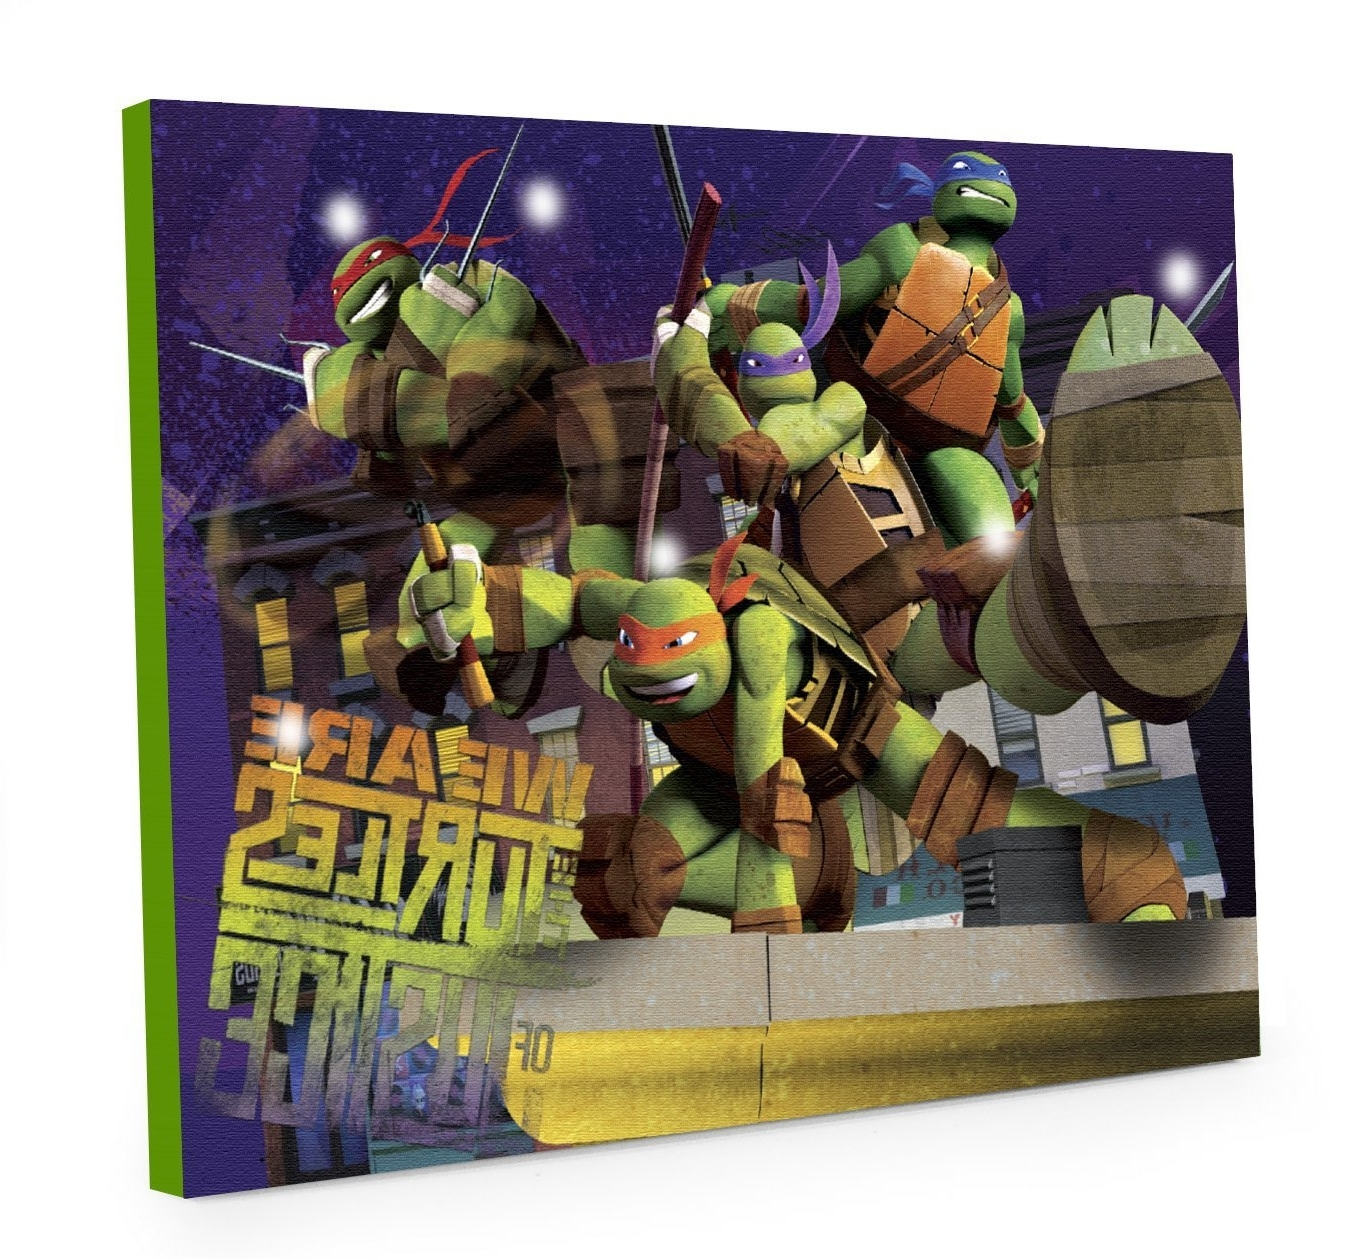 Best And Newest Amazon: Nickelodeon Teenage Mutant Ninja Turtles Led Canvas Inside Tmnt Wall Art (View 2 of 15)